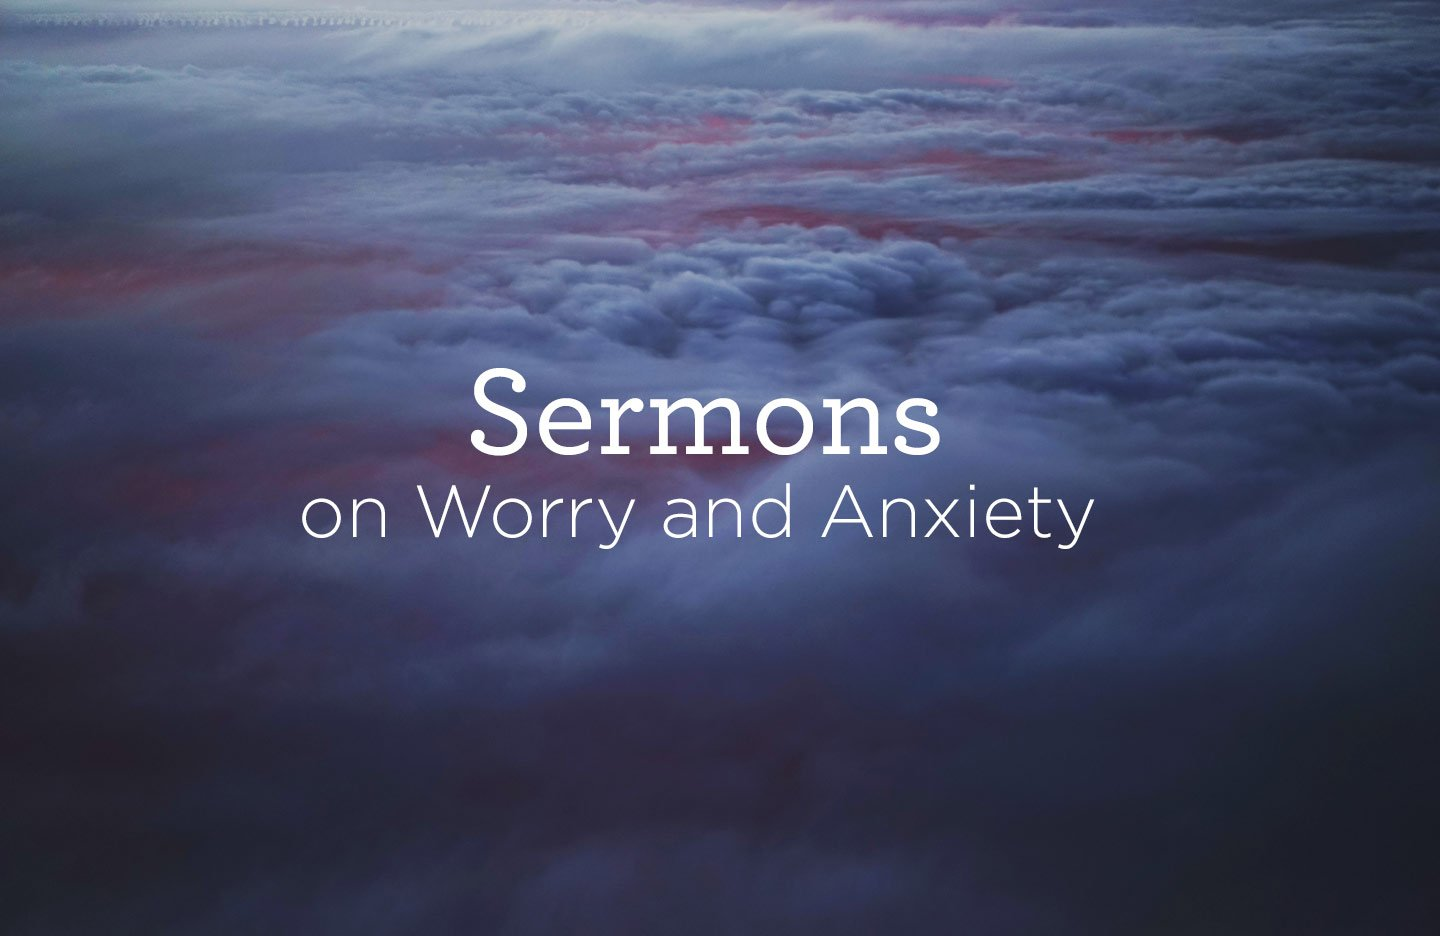 thumbnail image for 6 Messages on Worry & Anxiety by Alistair Begg